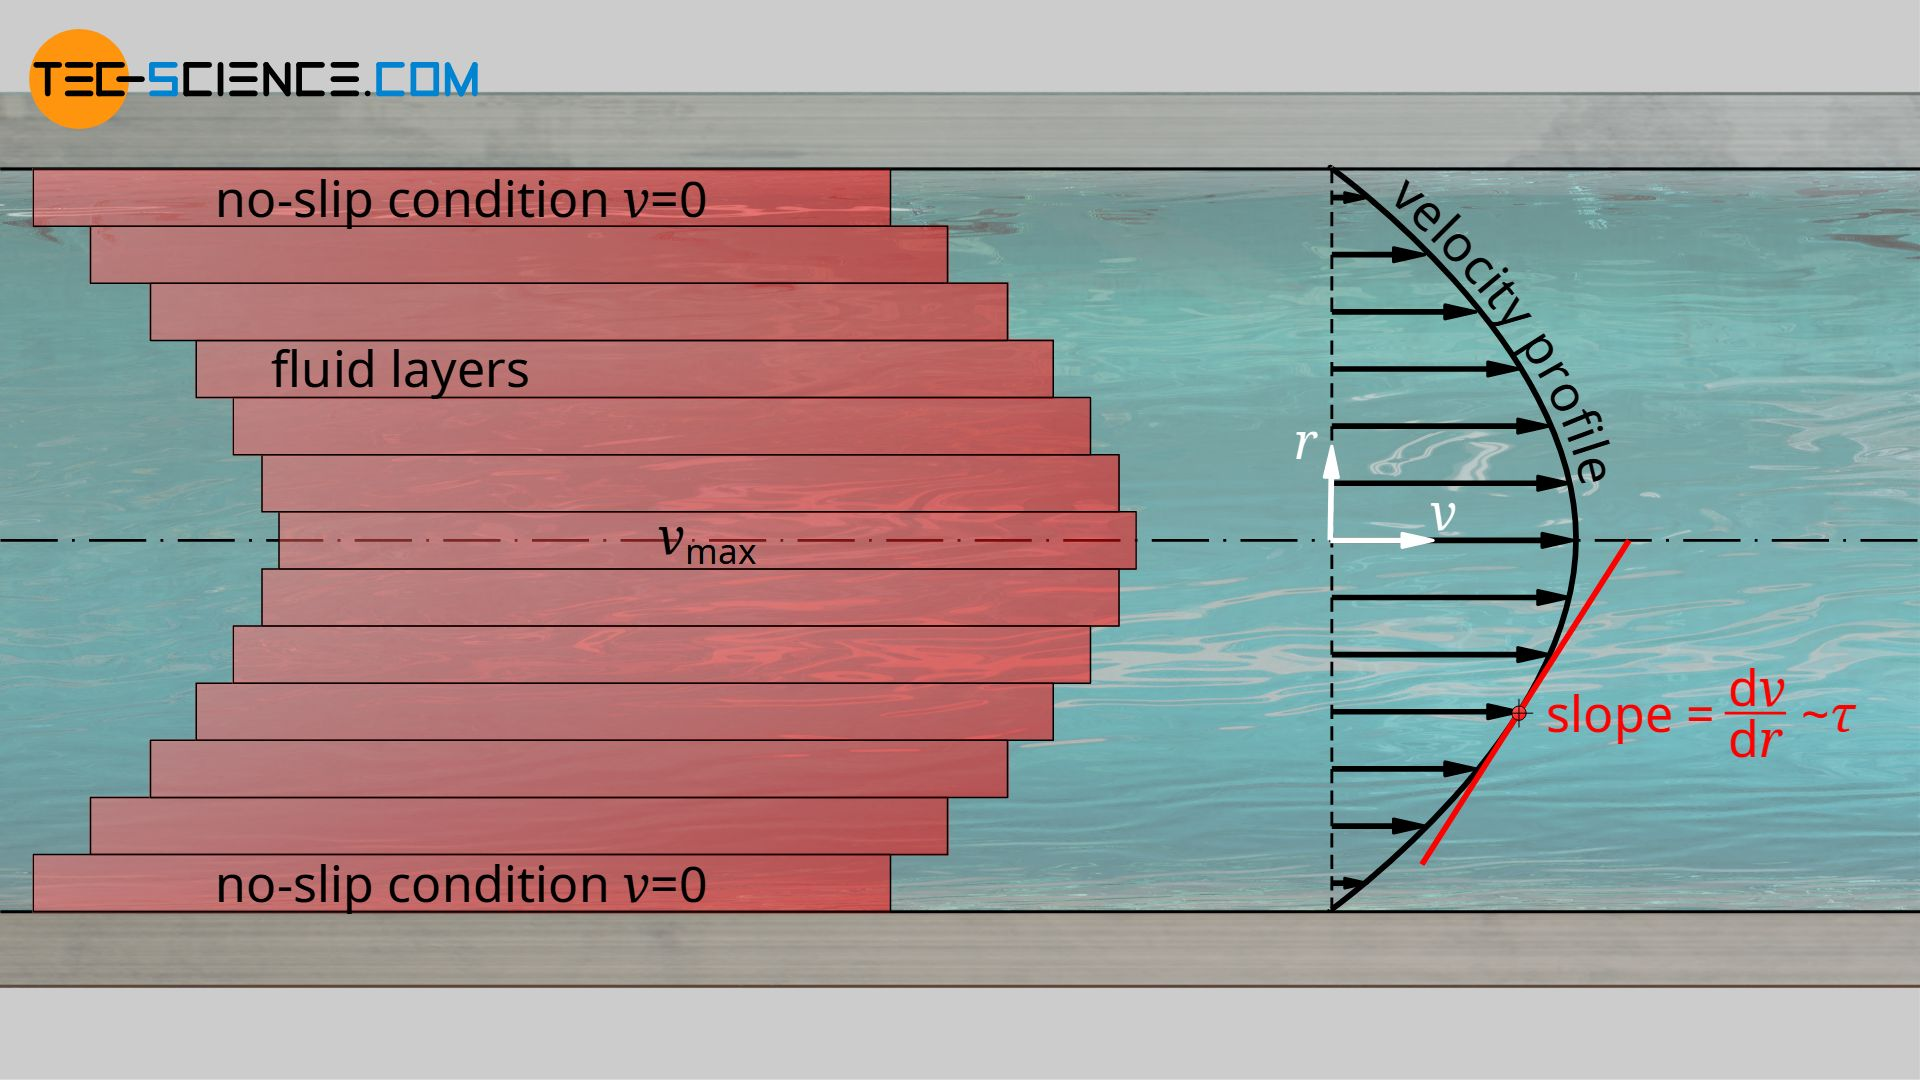 Friction of fluid layers due to viscosity and the resulting velocity profile